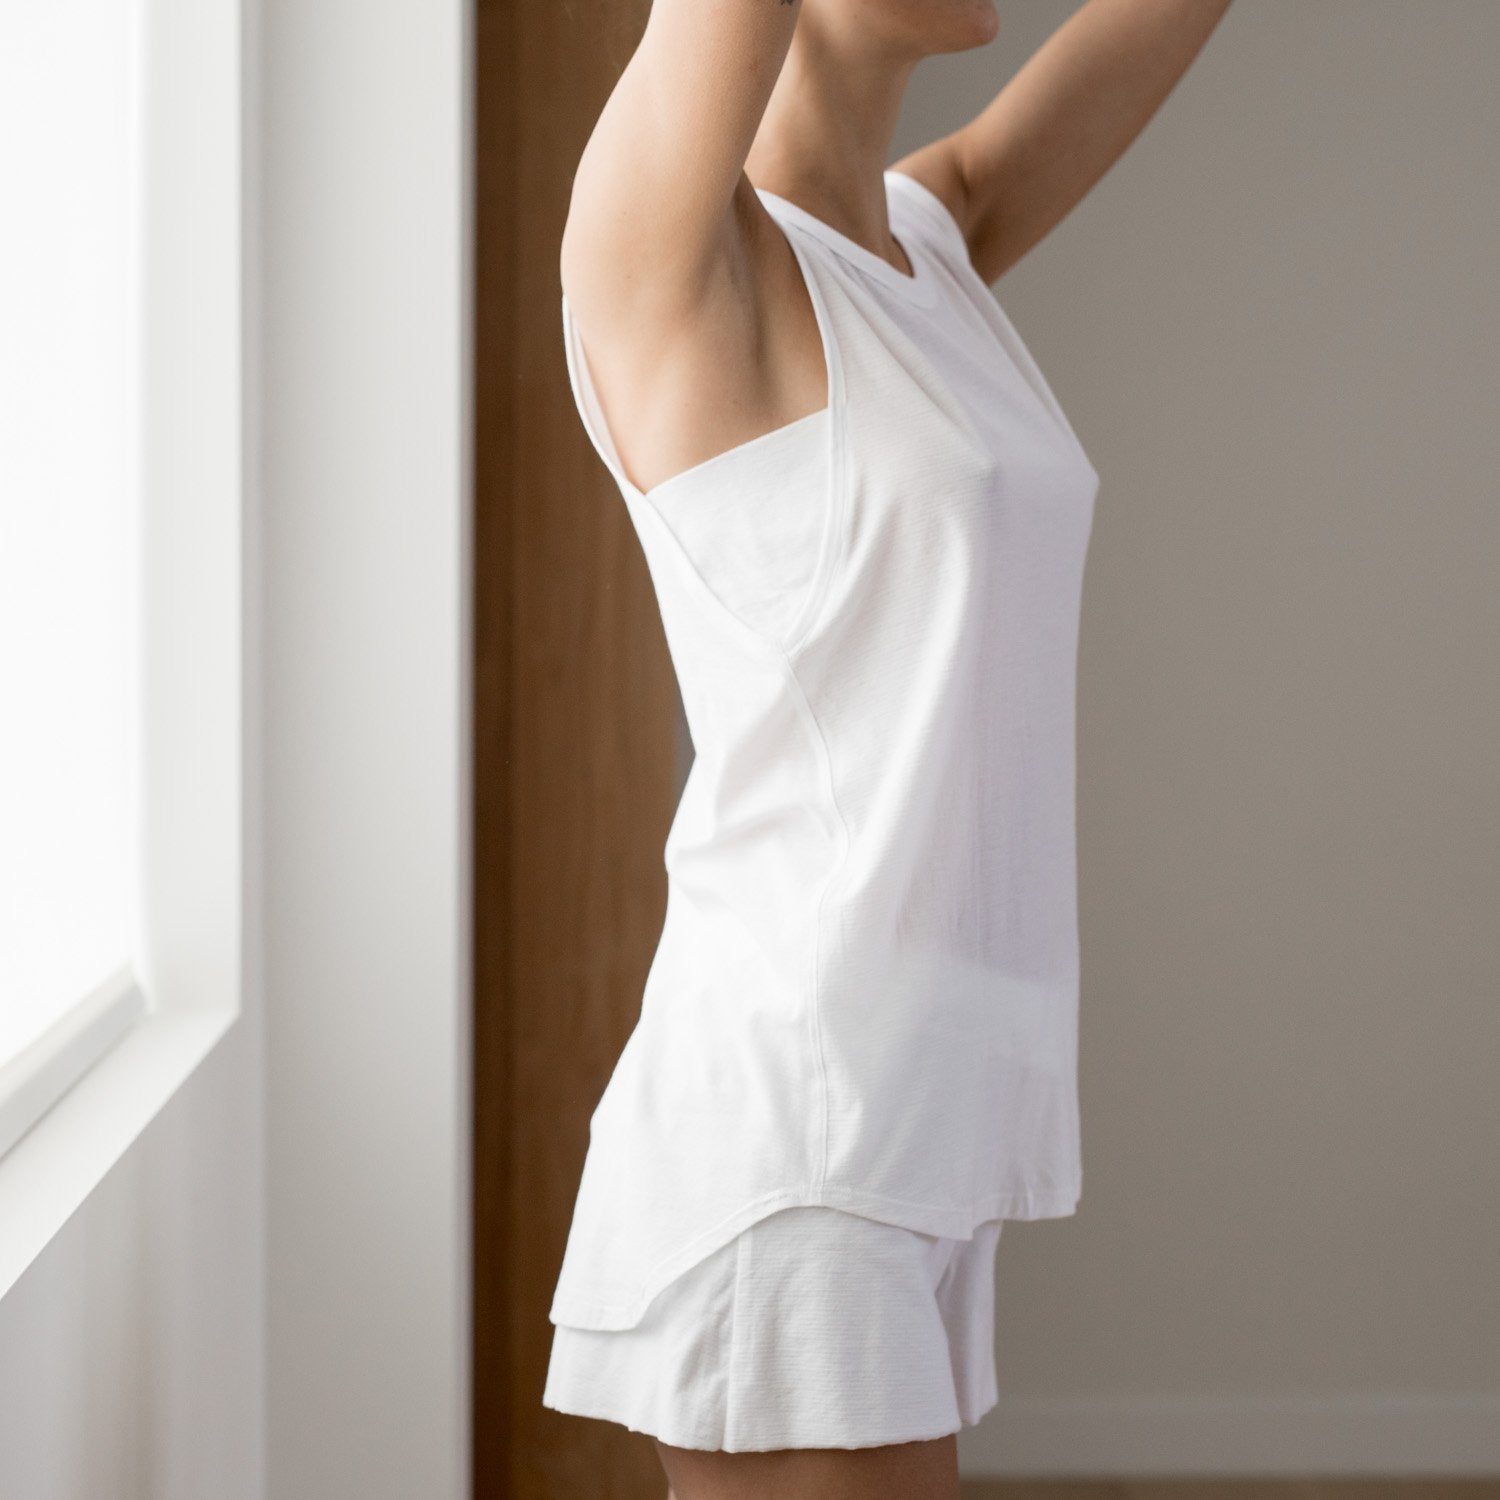 Lunya Sleepwear Cool Muscle Tee - #White